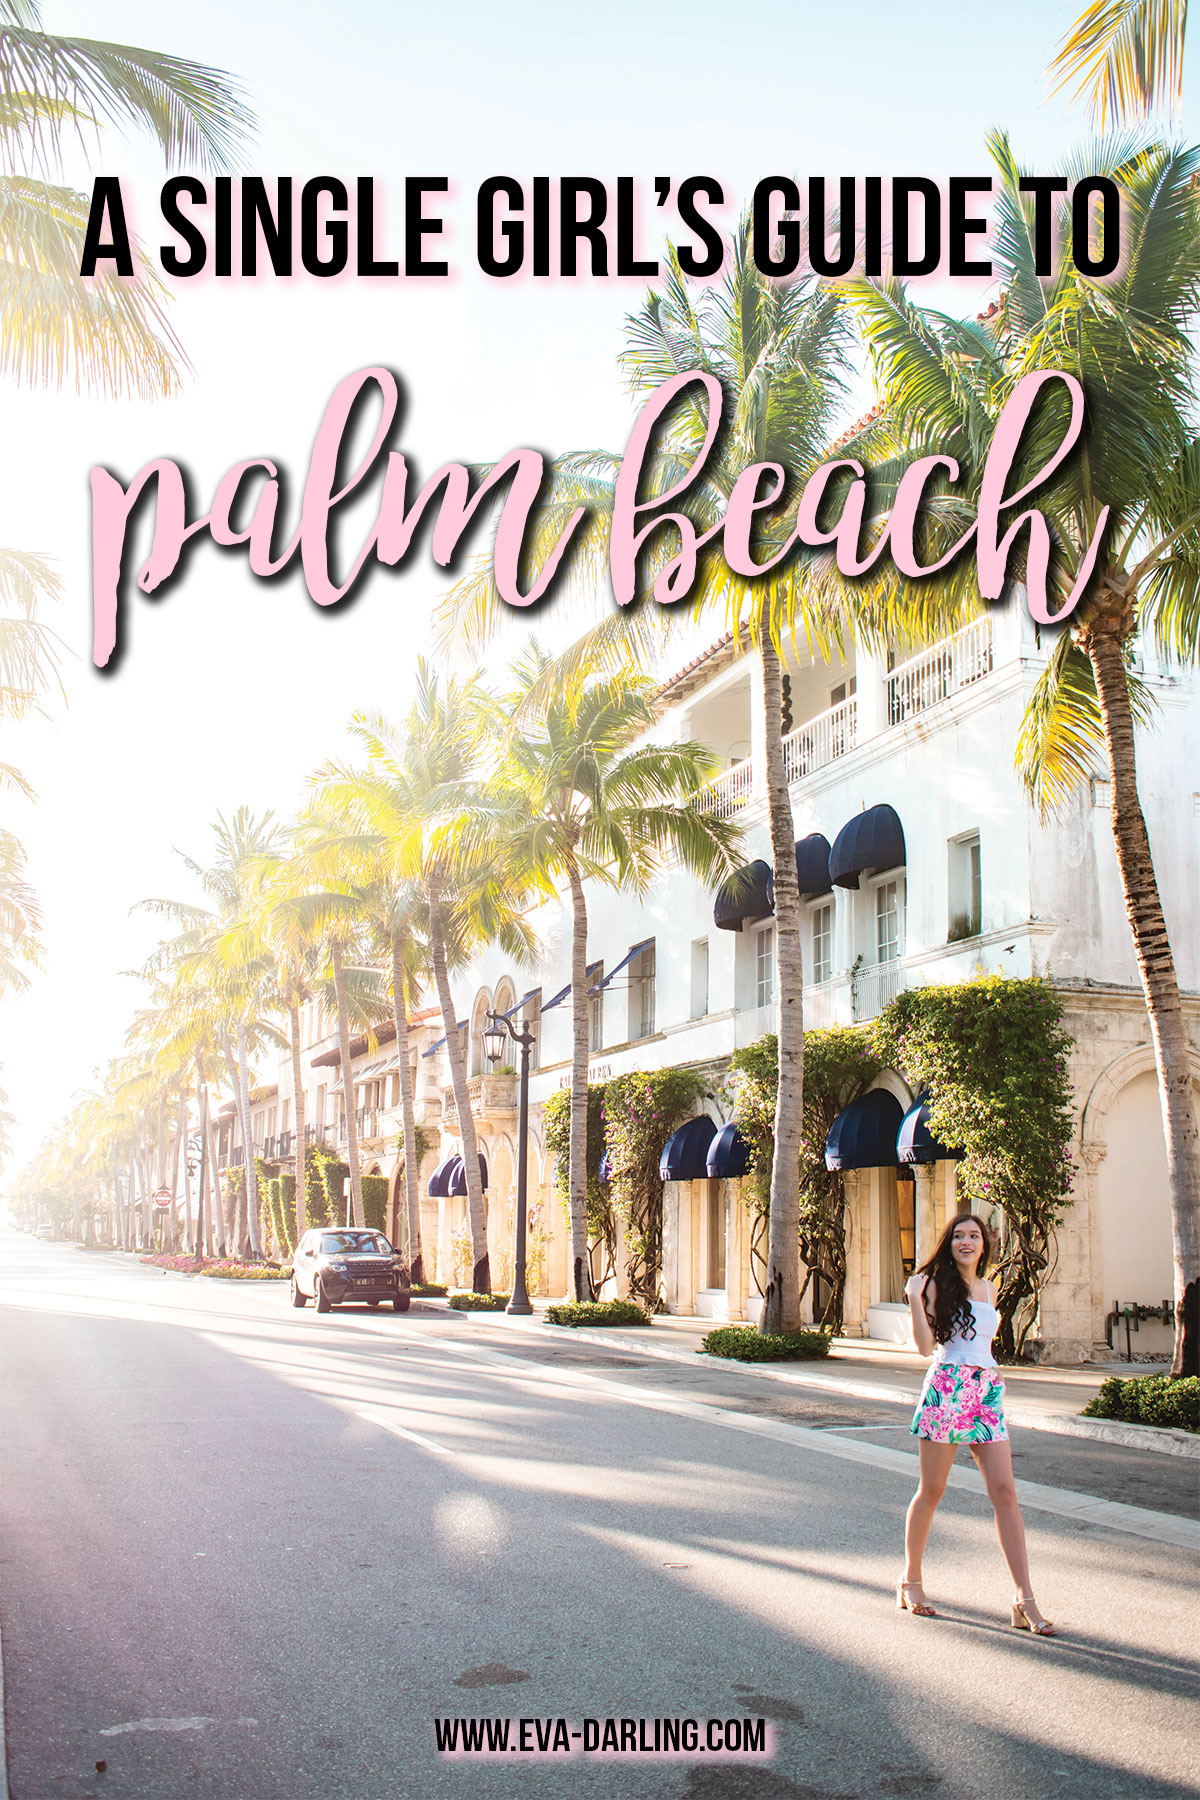 a single girl's guide to palm beach florida worth avenue lilly pulitzer nicki skort via flora travel blogger where to go in florida safe solo female travel destination what to do in palm best pbi island Eva Phan of Eva Darling forever 21 white peplum crop top gucci marmont gold leather sandals